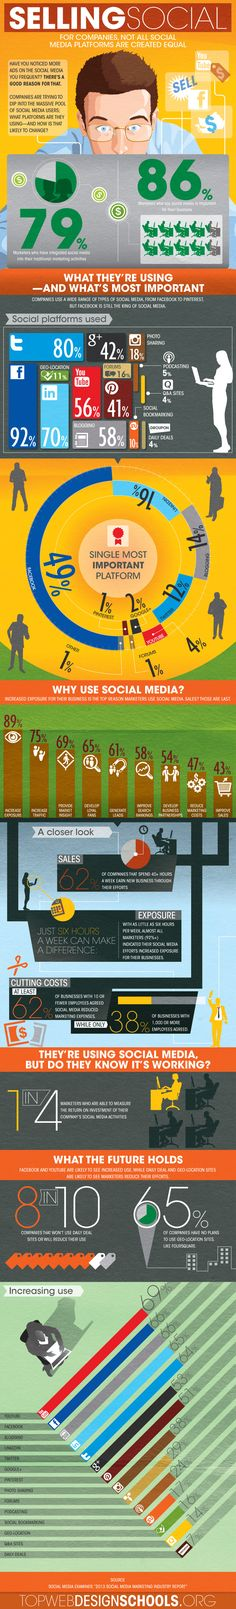 Why use Social Media for your #business #success #infographic www.socialmediamamma.com